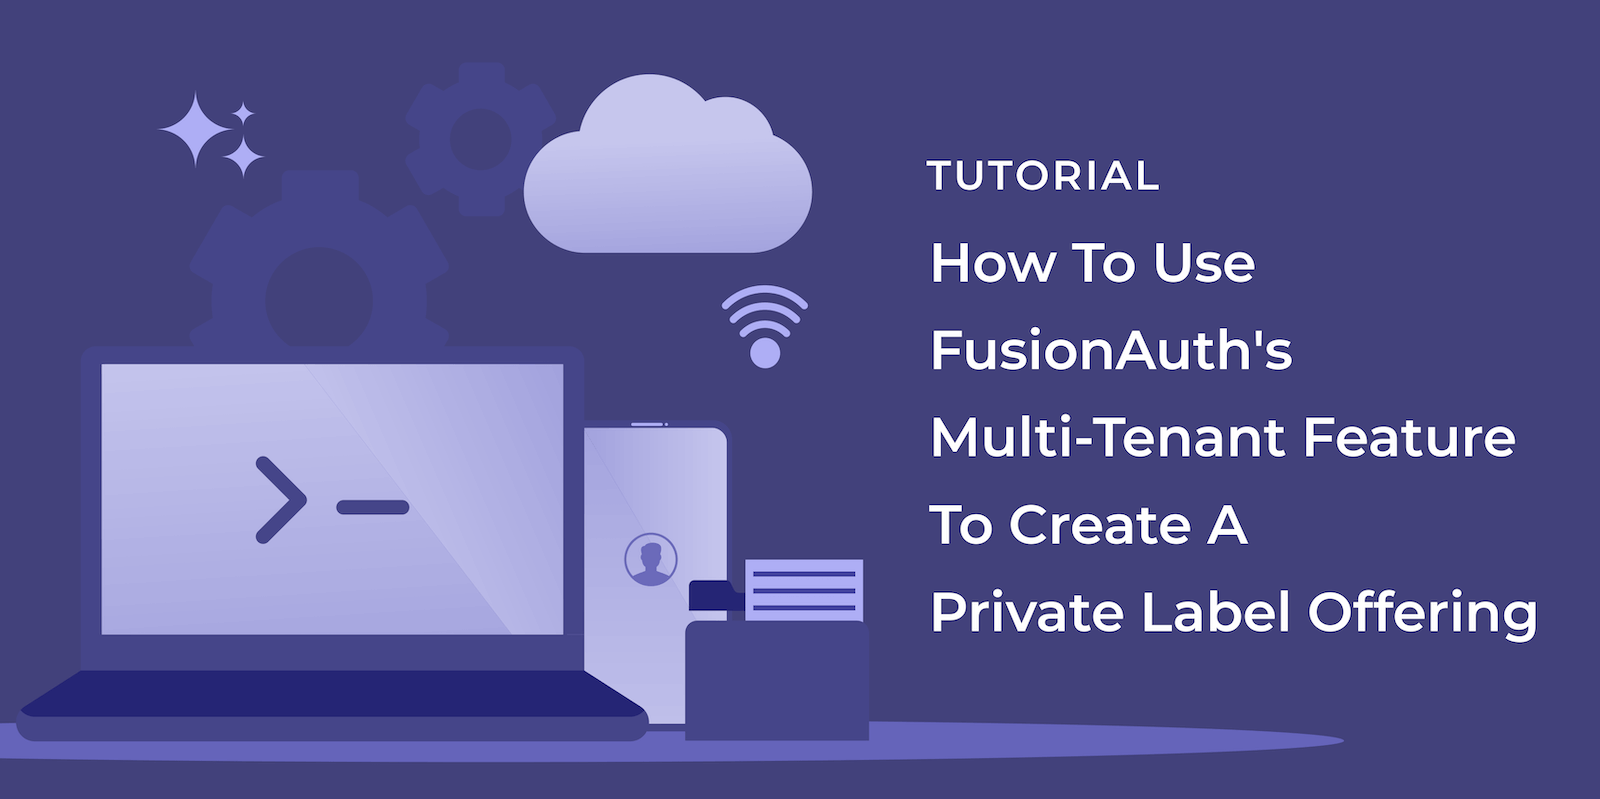 You can leverage multi-tenant features to easily separate users, themes, API keys and more. This will allow for logical separation while still allowing your customer support and operations teams to manage one FusionAuth instance.